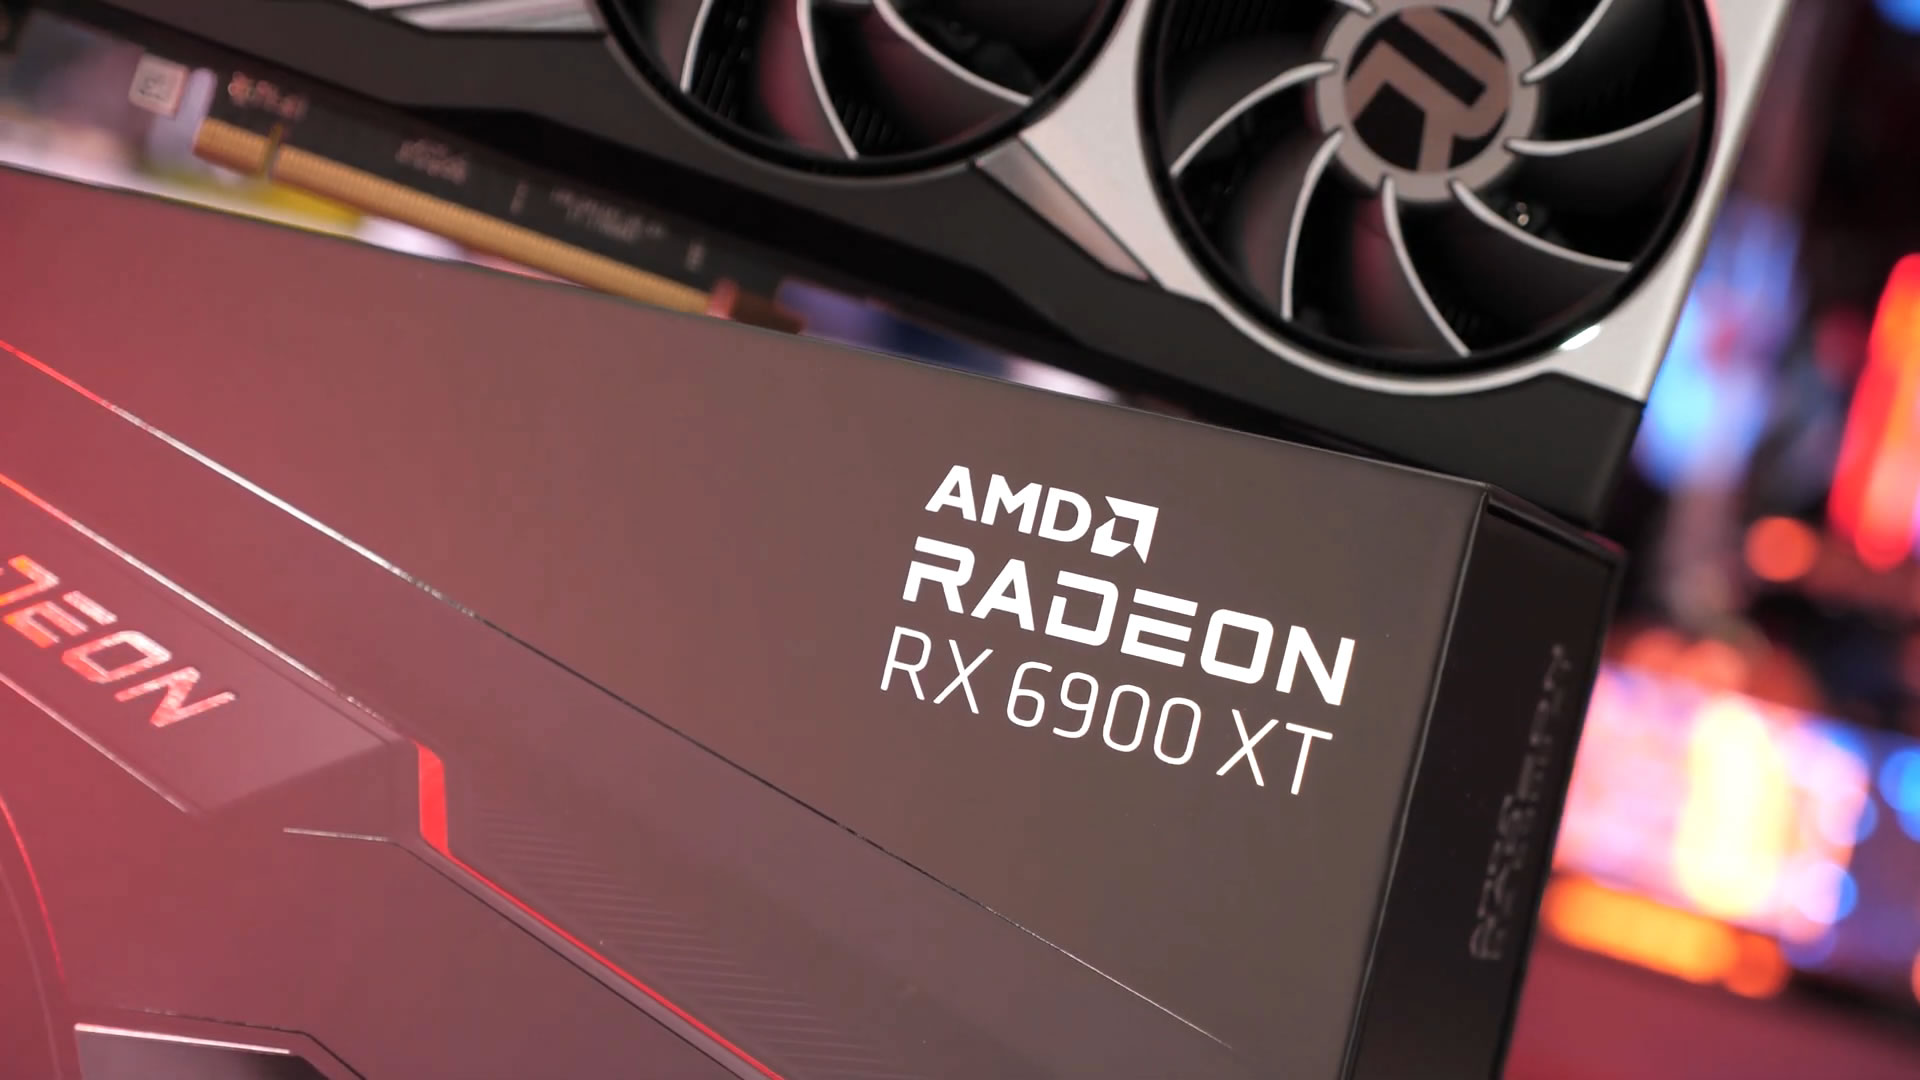 The latest Radeon driver improves some RX 6000 cards' power consumption, but AMD never mentioned it